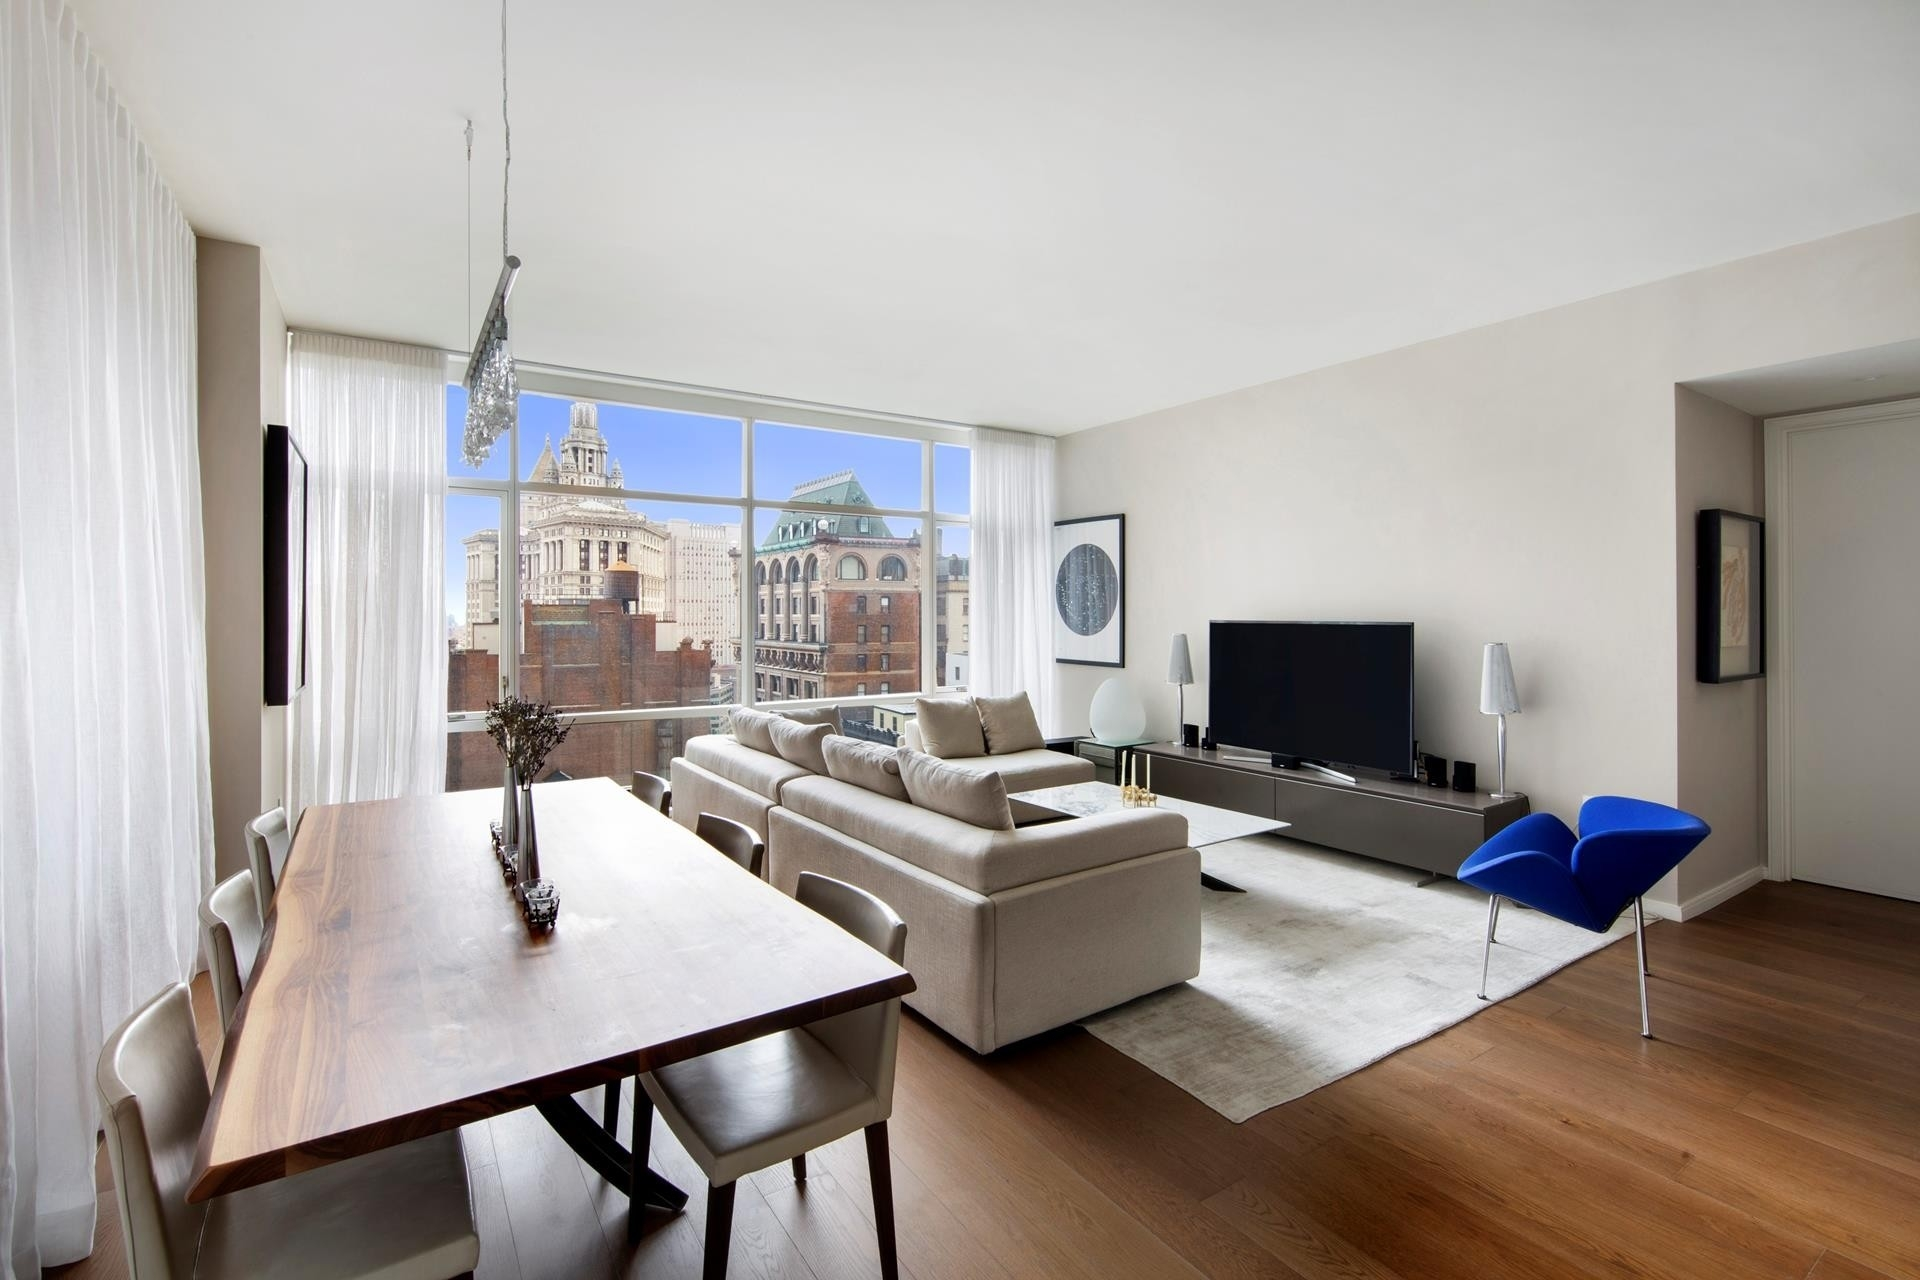 Property 在 The Beekman Residences, 5 Beekman St, 22A Financial District, 纽约, NY 10038